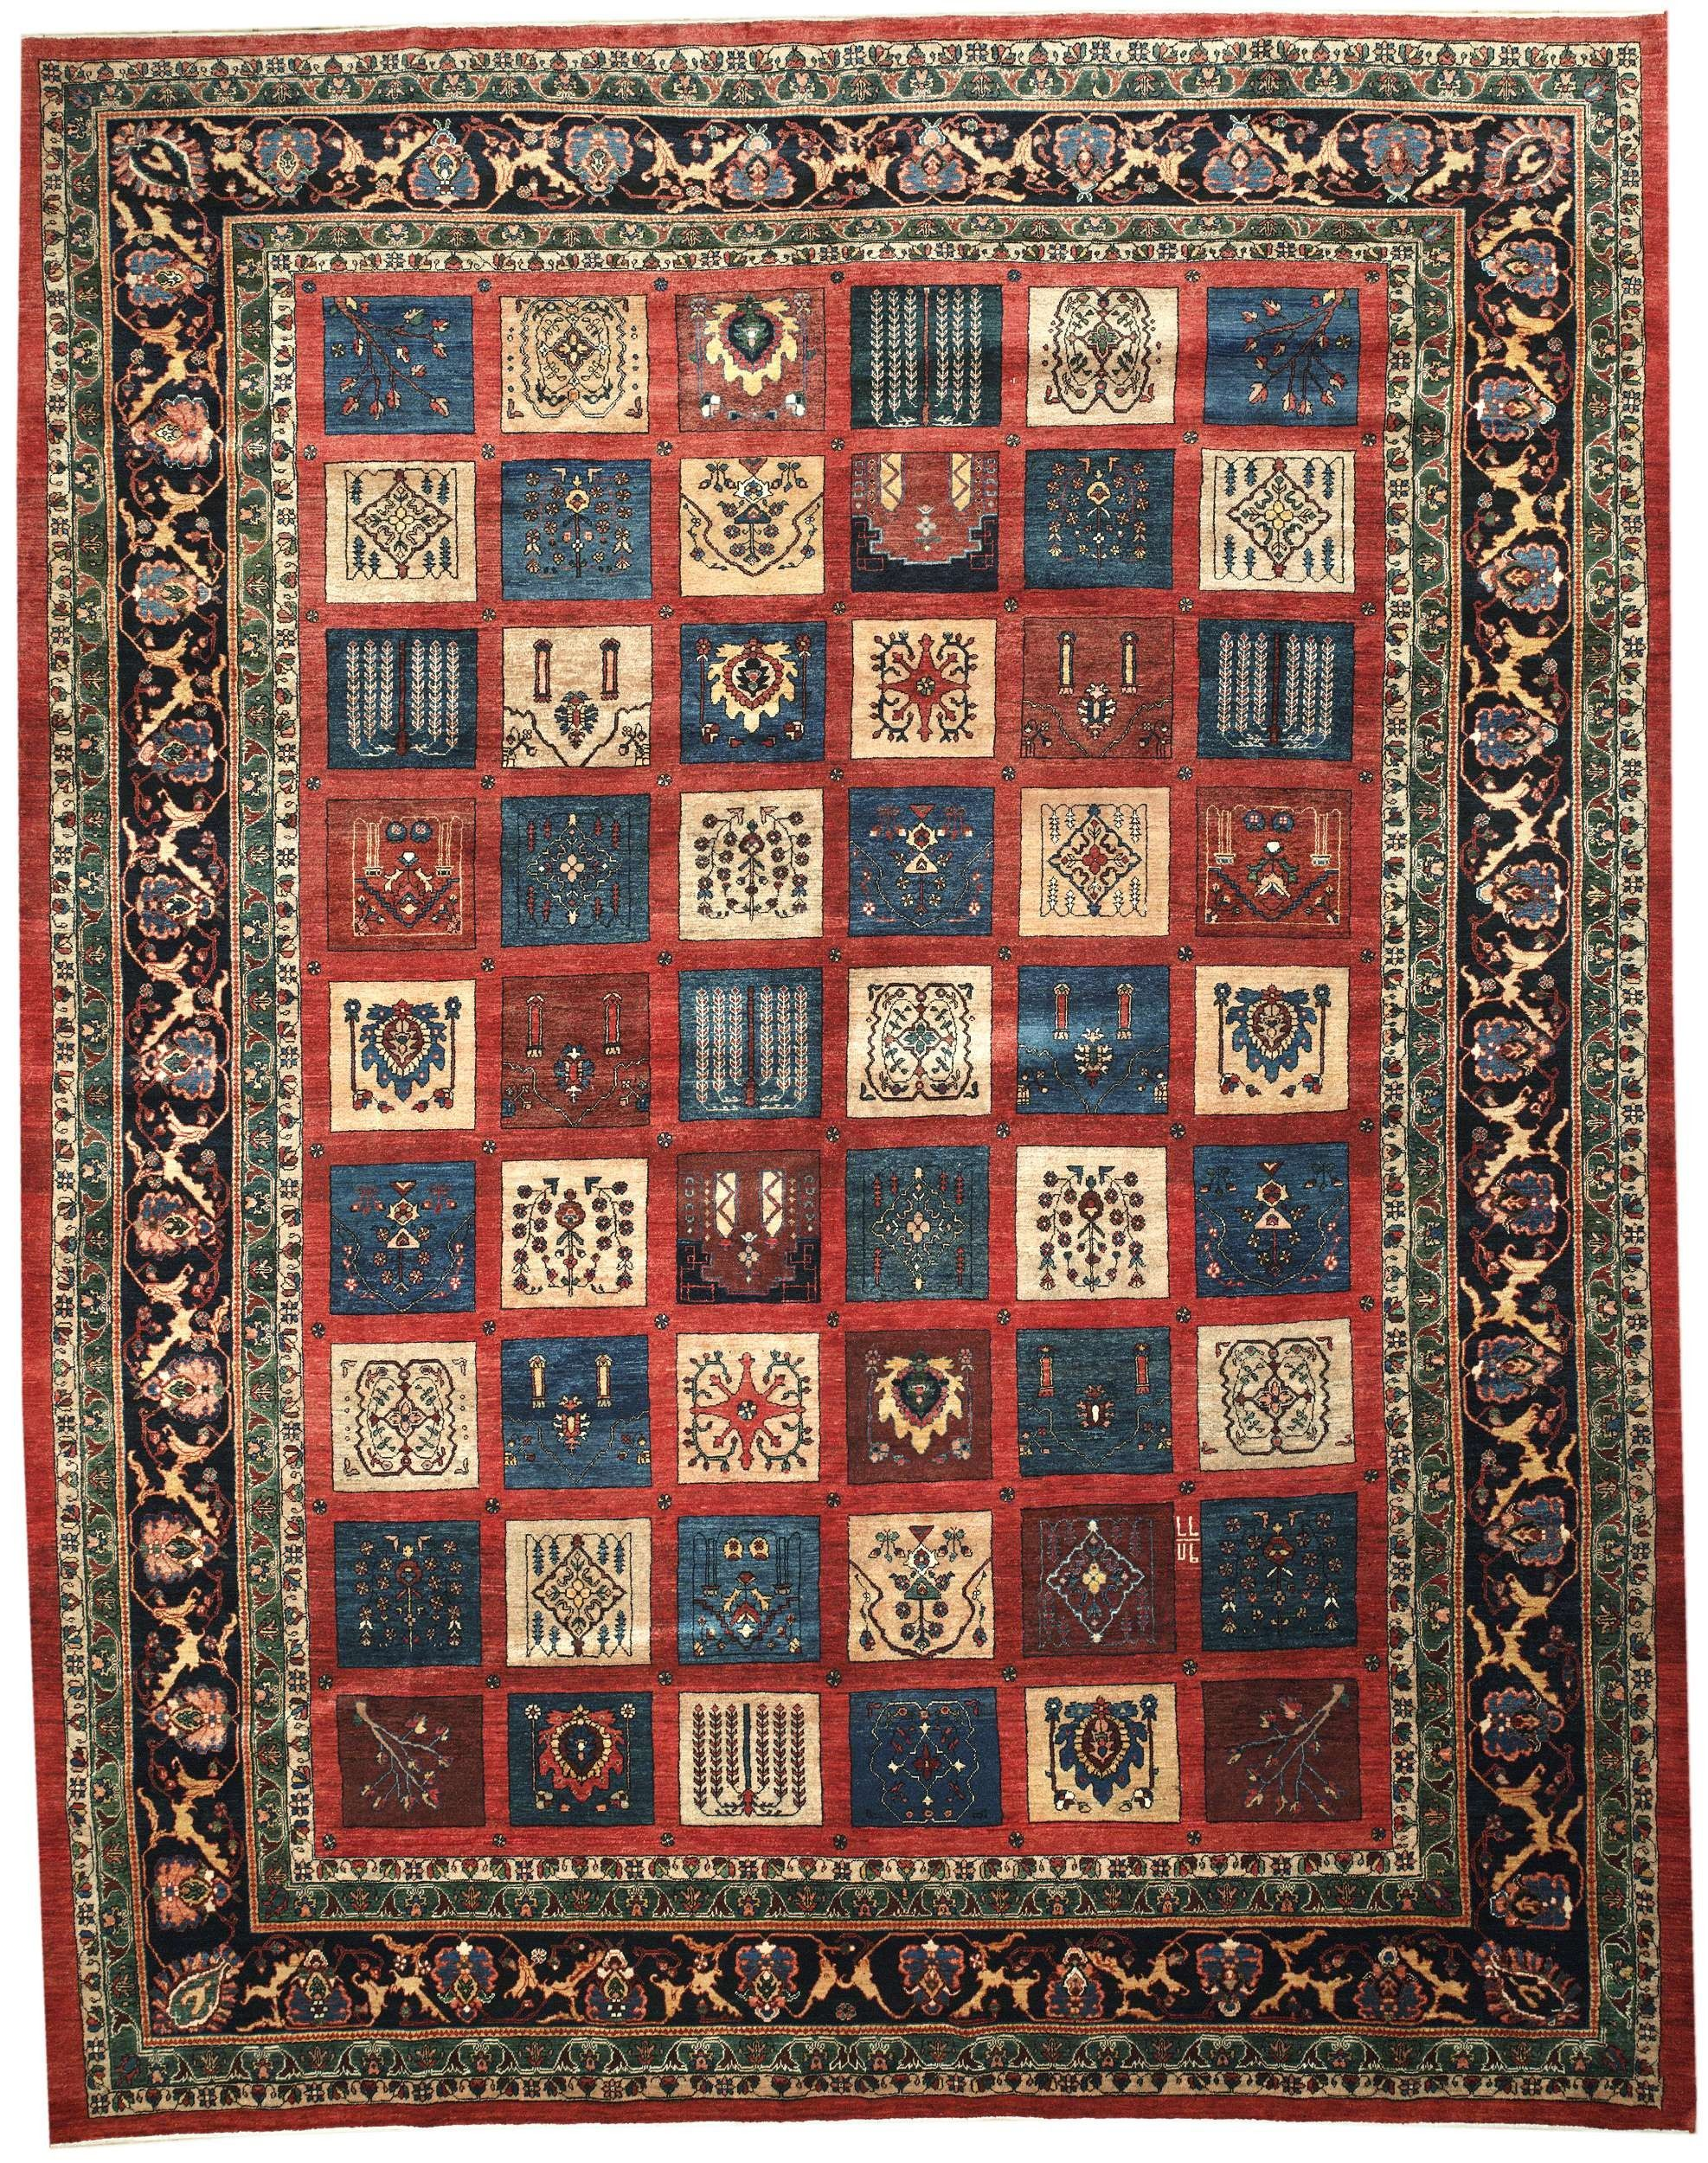 This Beautiful Handmade Knotted Rectangular Rug Is Approximately 10 X 13 New Contemporary Area Rug From Our Large Collection Of Handmade Gabbeh Rugs Area Rugs